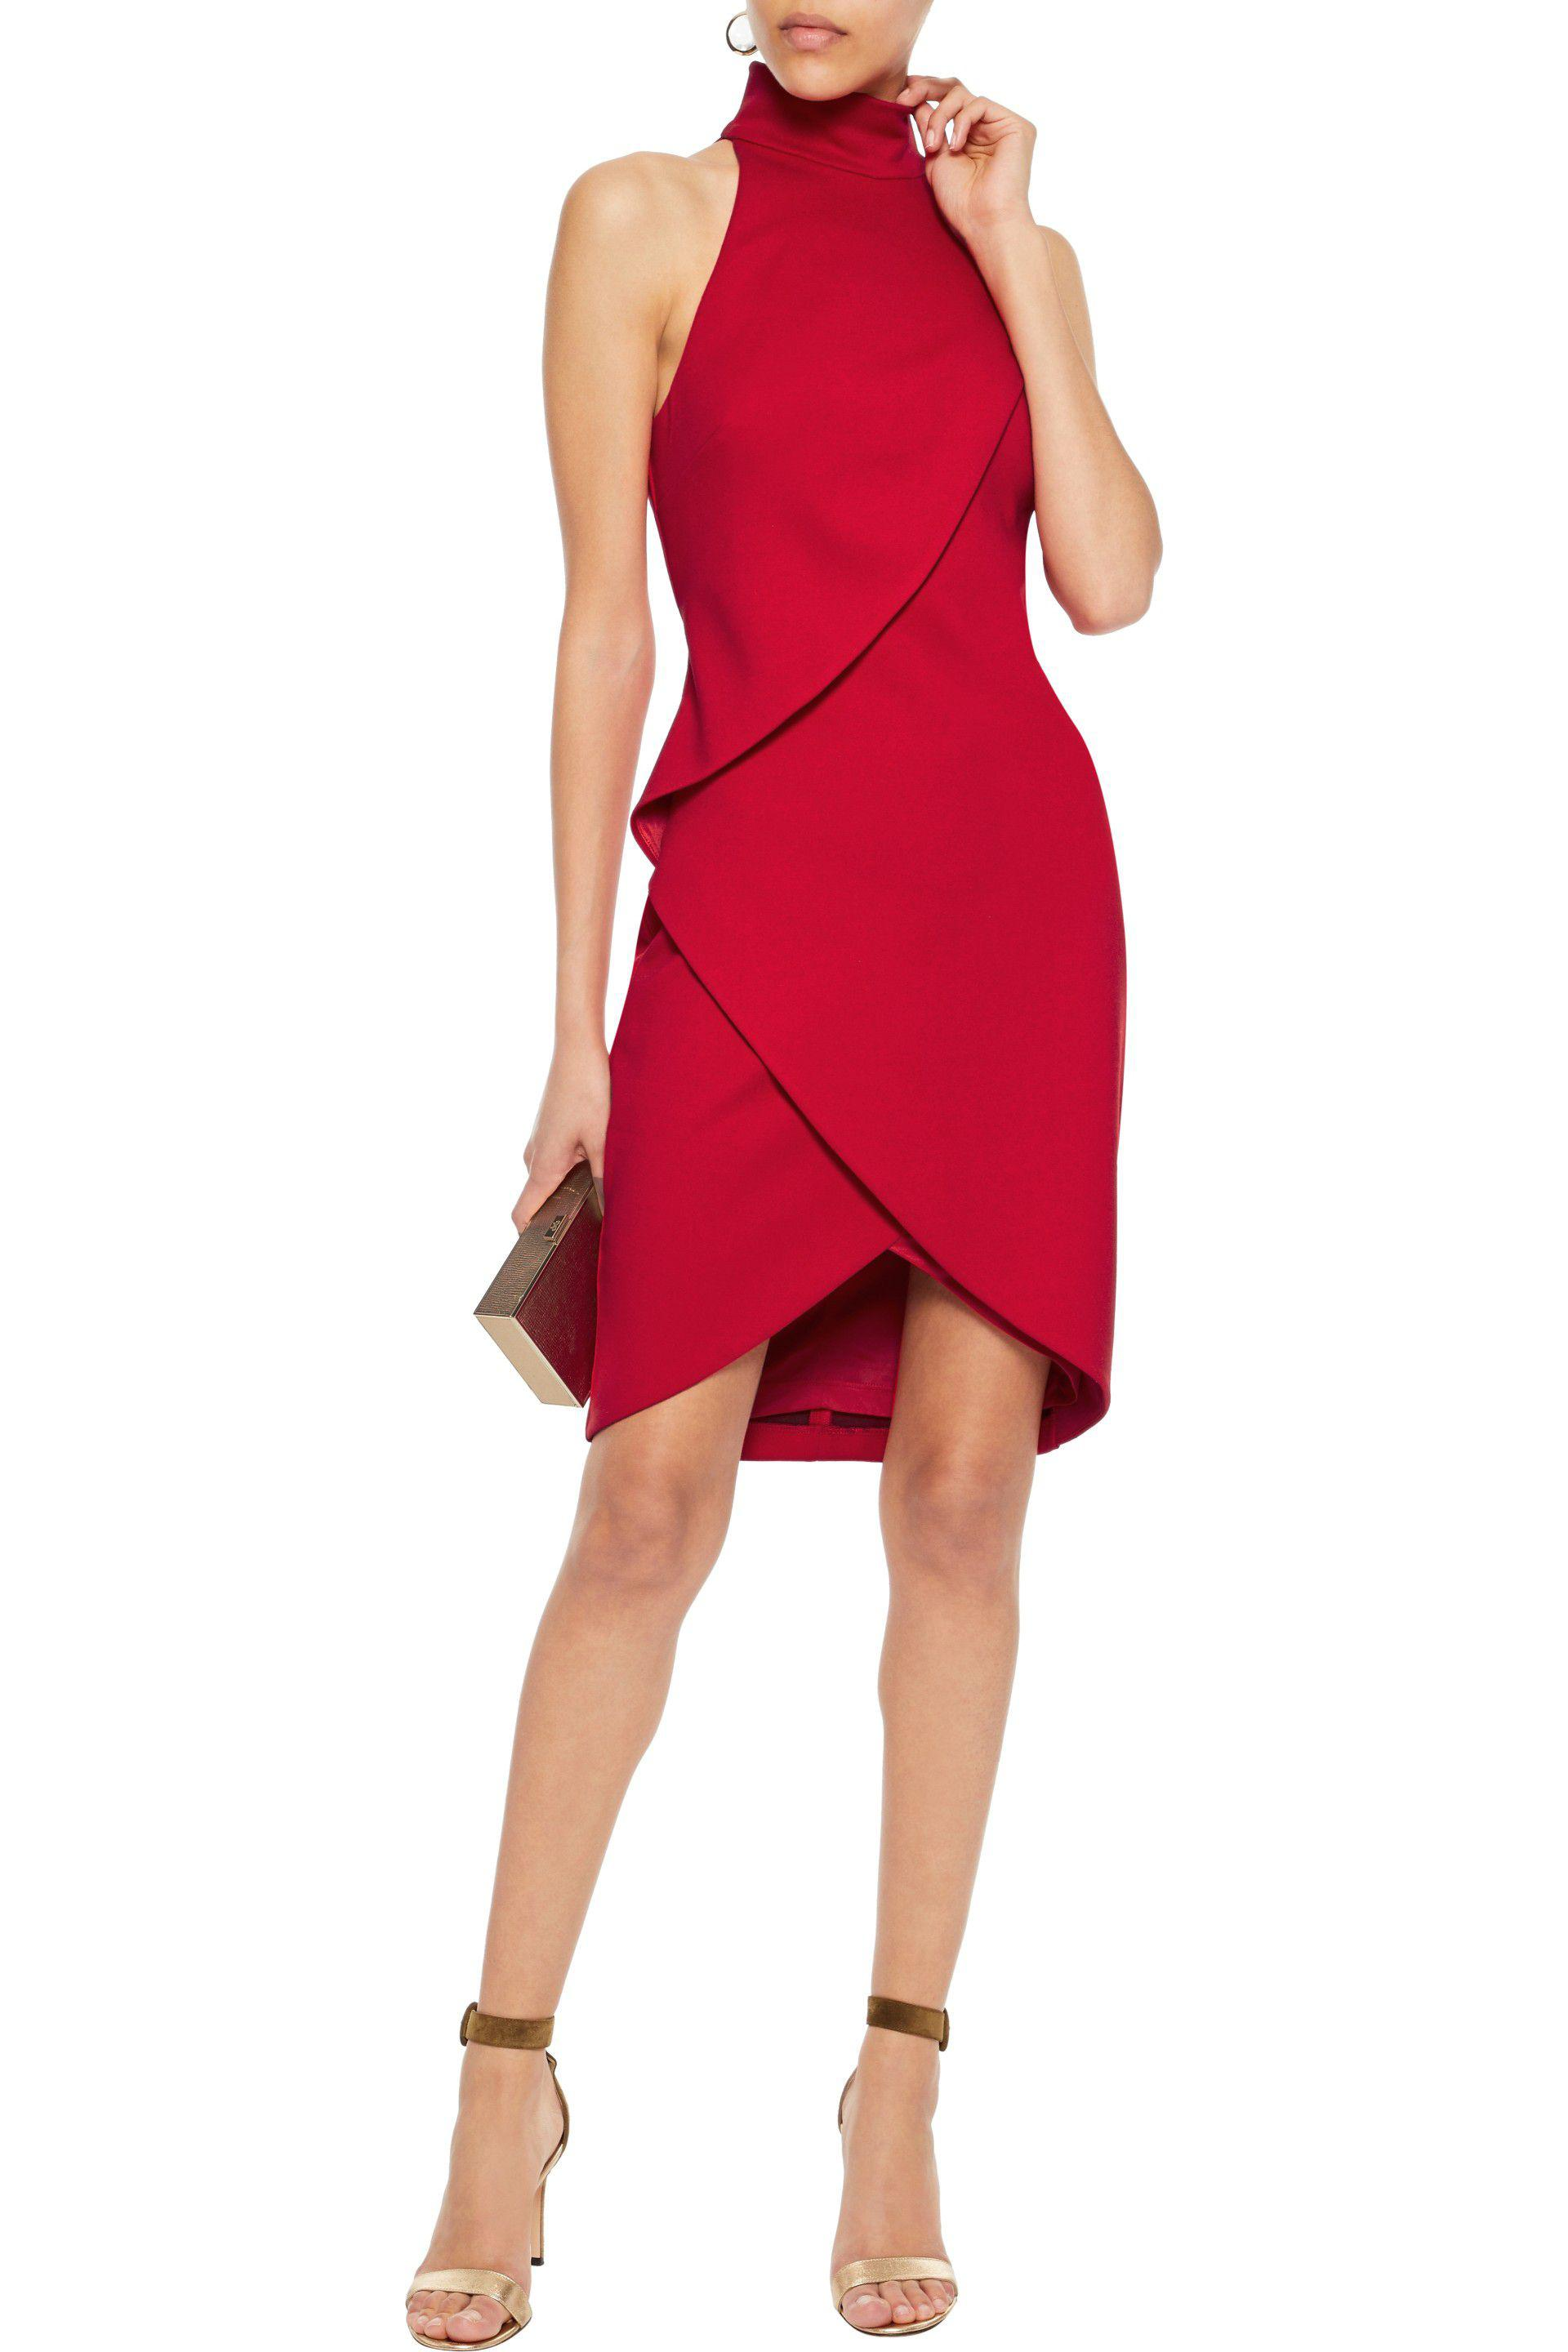 Free Shipping Genuine Bailey 44 Woman Orei Wrap-effect Ponte Dress Red Size M Bailey 44 The Cheapest For Sale Cheap Price Cost Cheap Online Shop For Cheap Price oEXBB3y